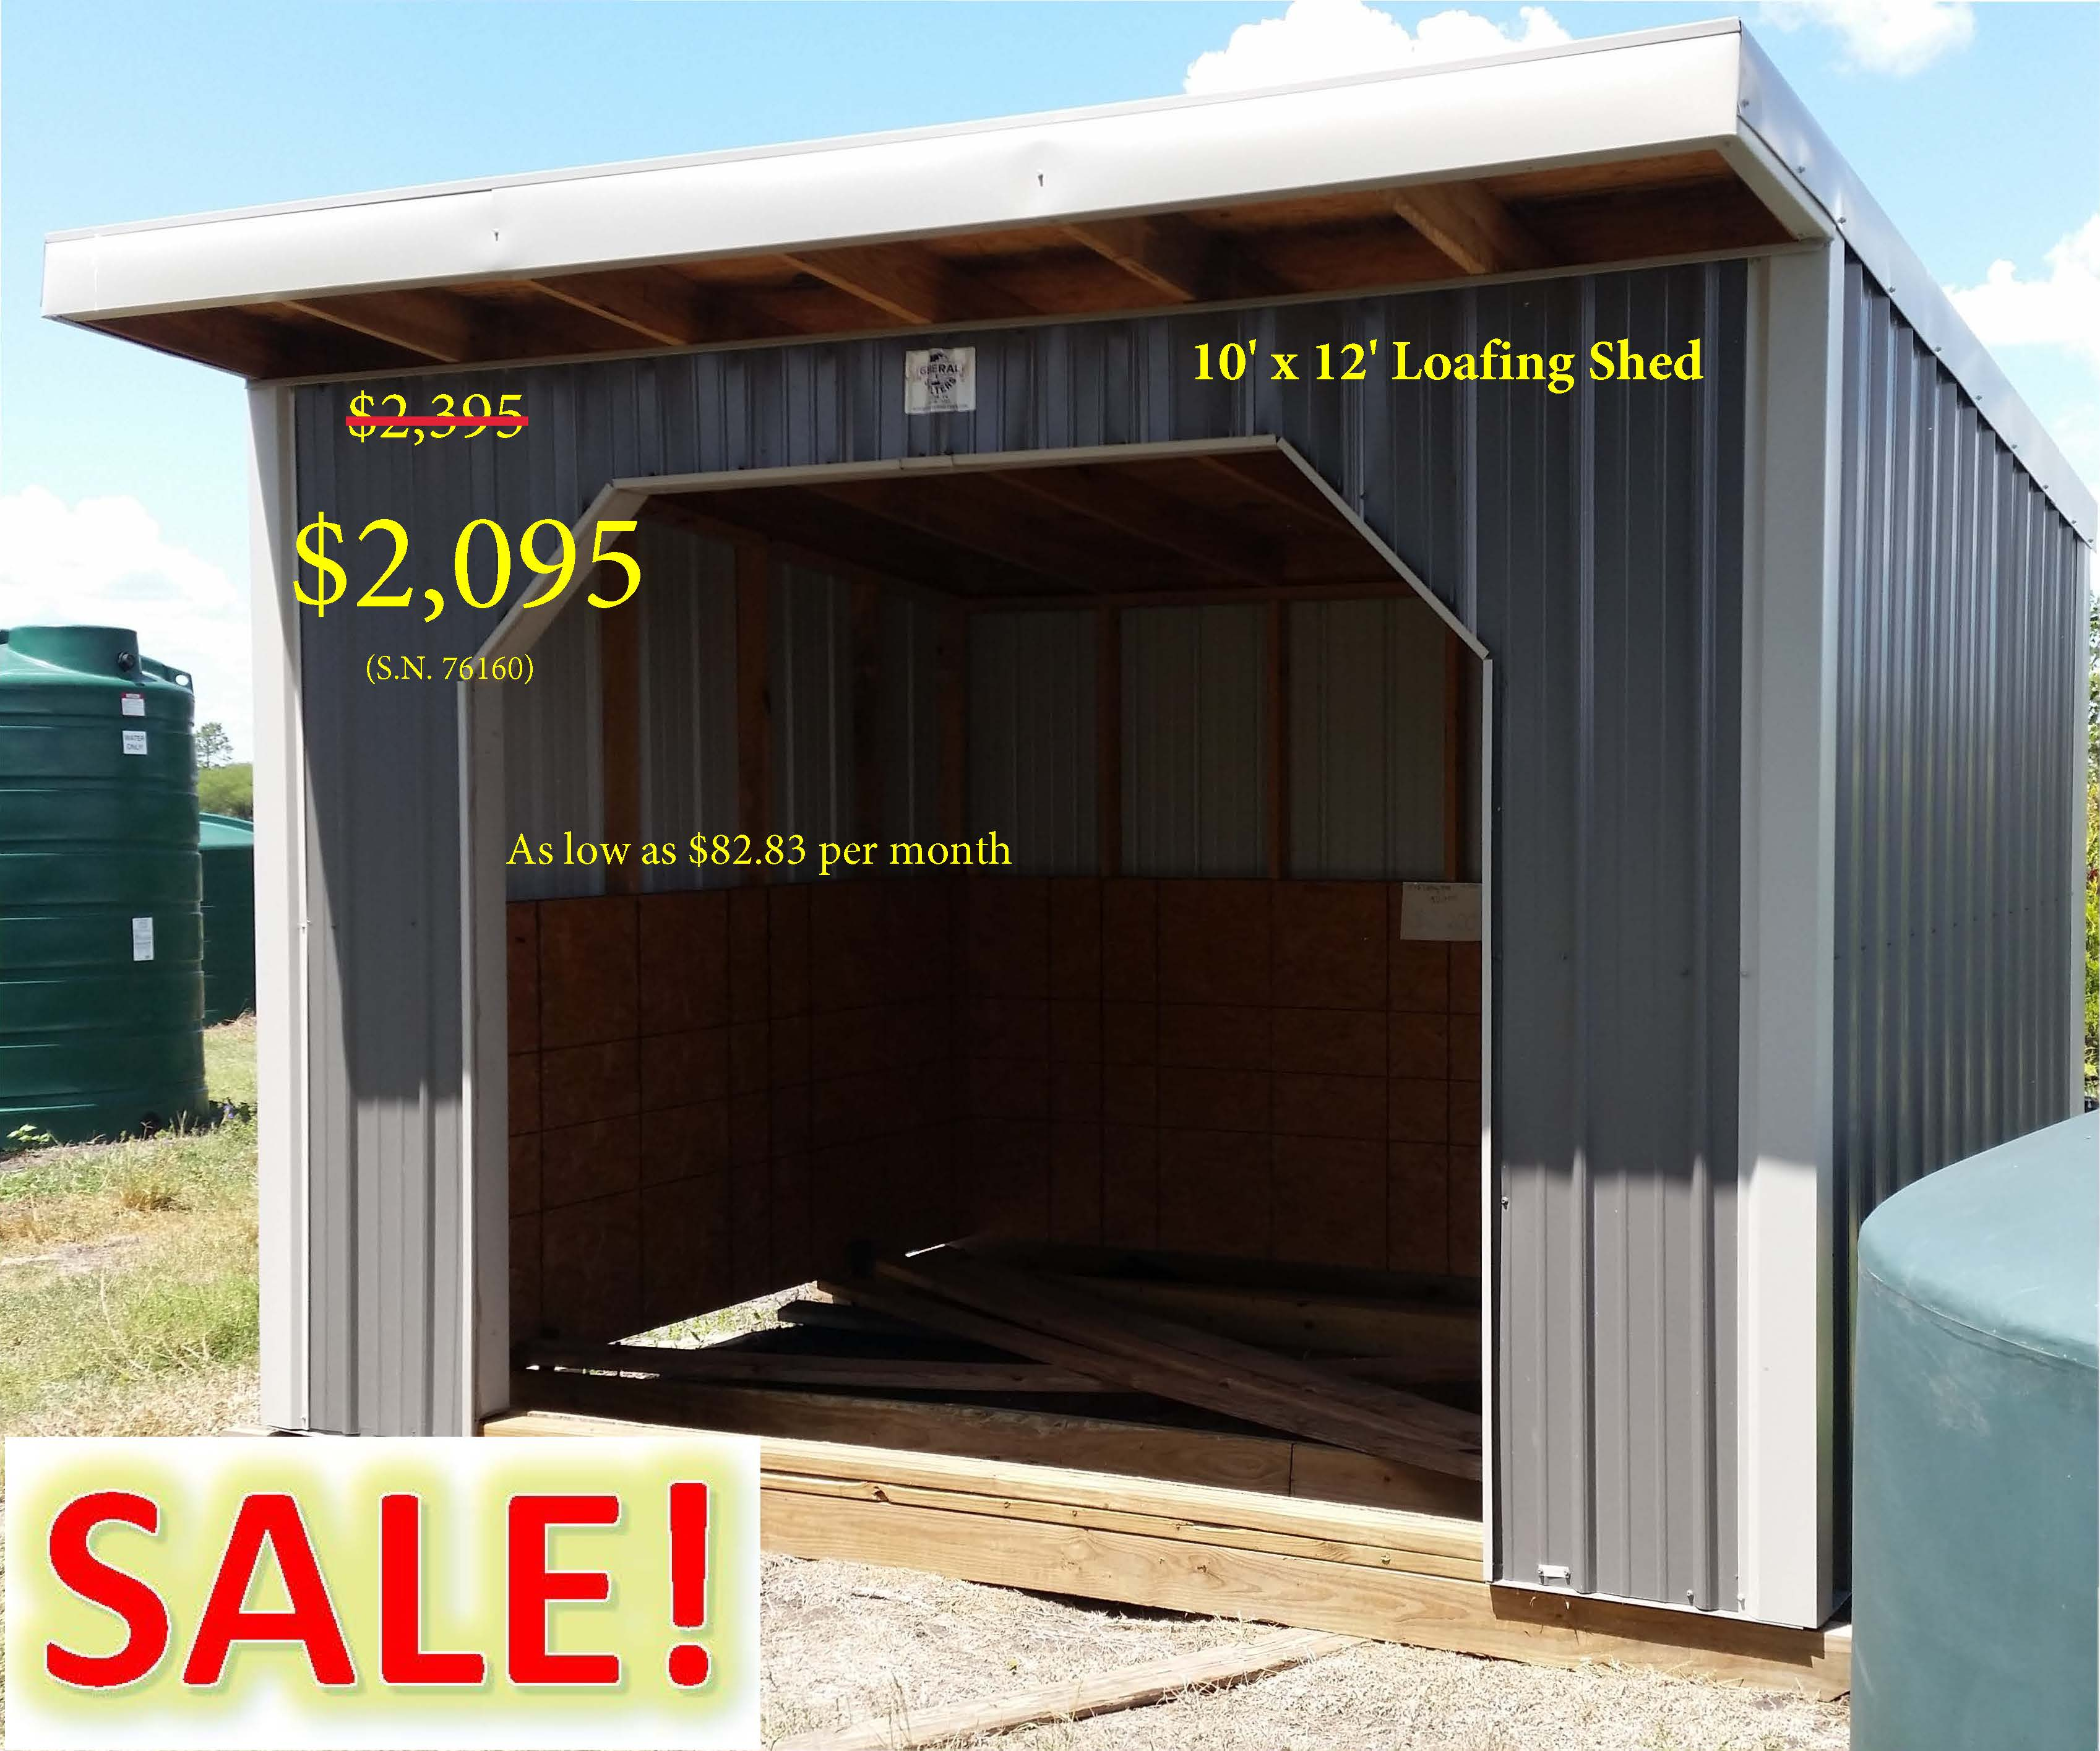 10x12_Loafing_Shed_76160.jpg